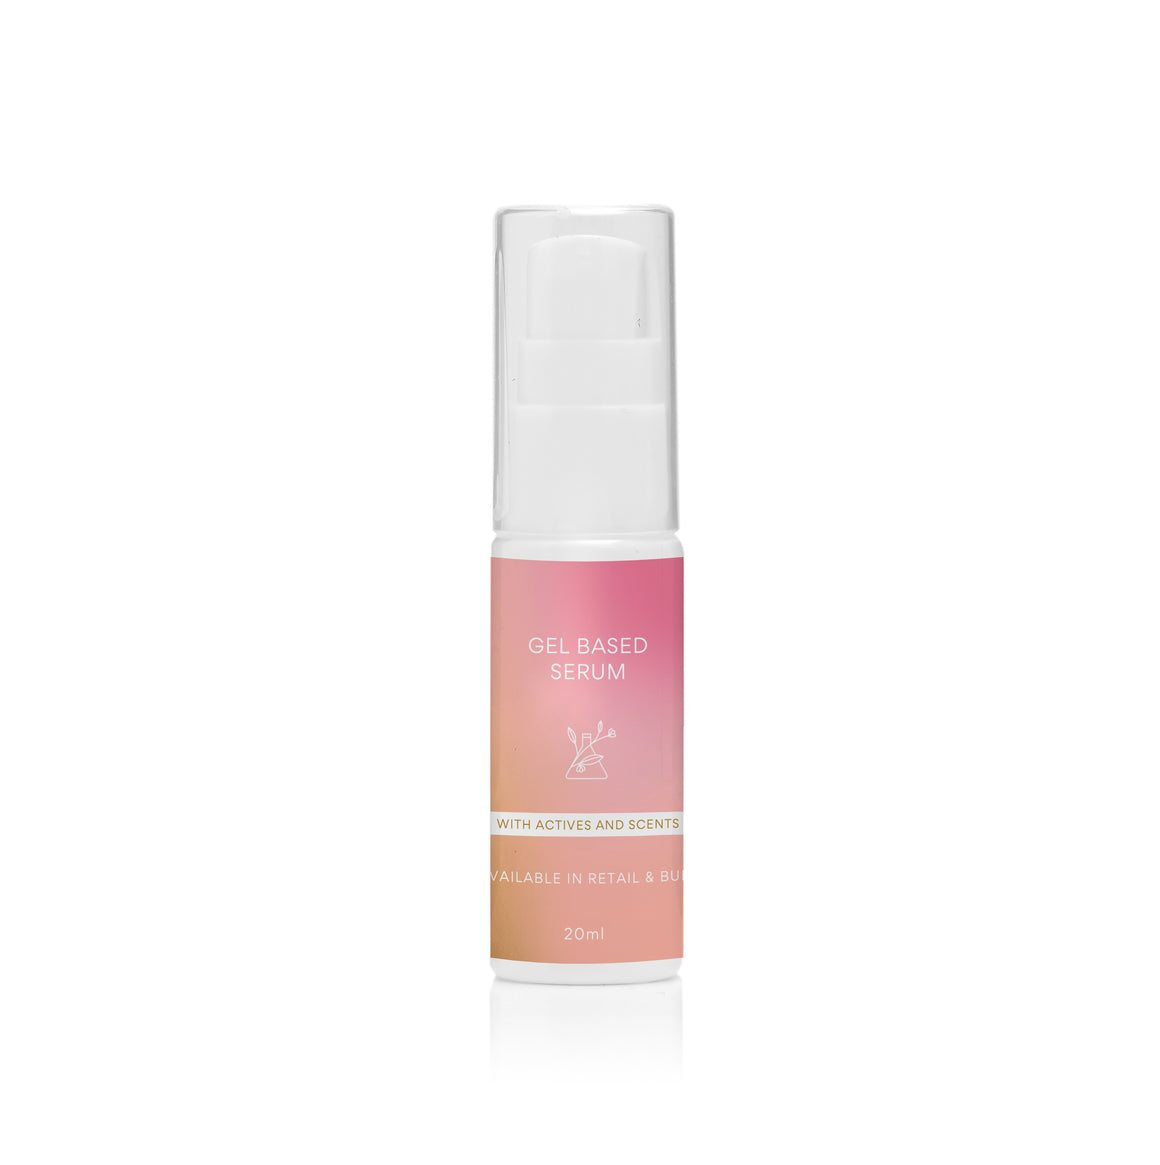 CUSTOMISED PRODUCT Gel Based Serum with Scent & Actives - 20ml - $9.95